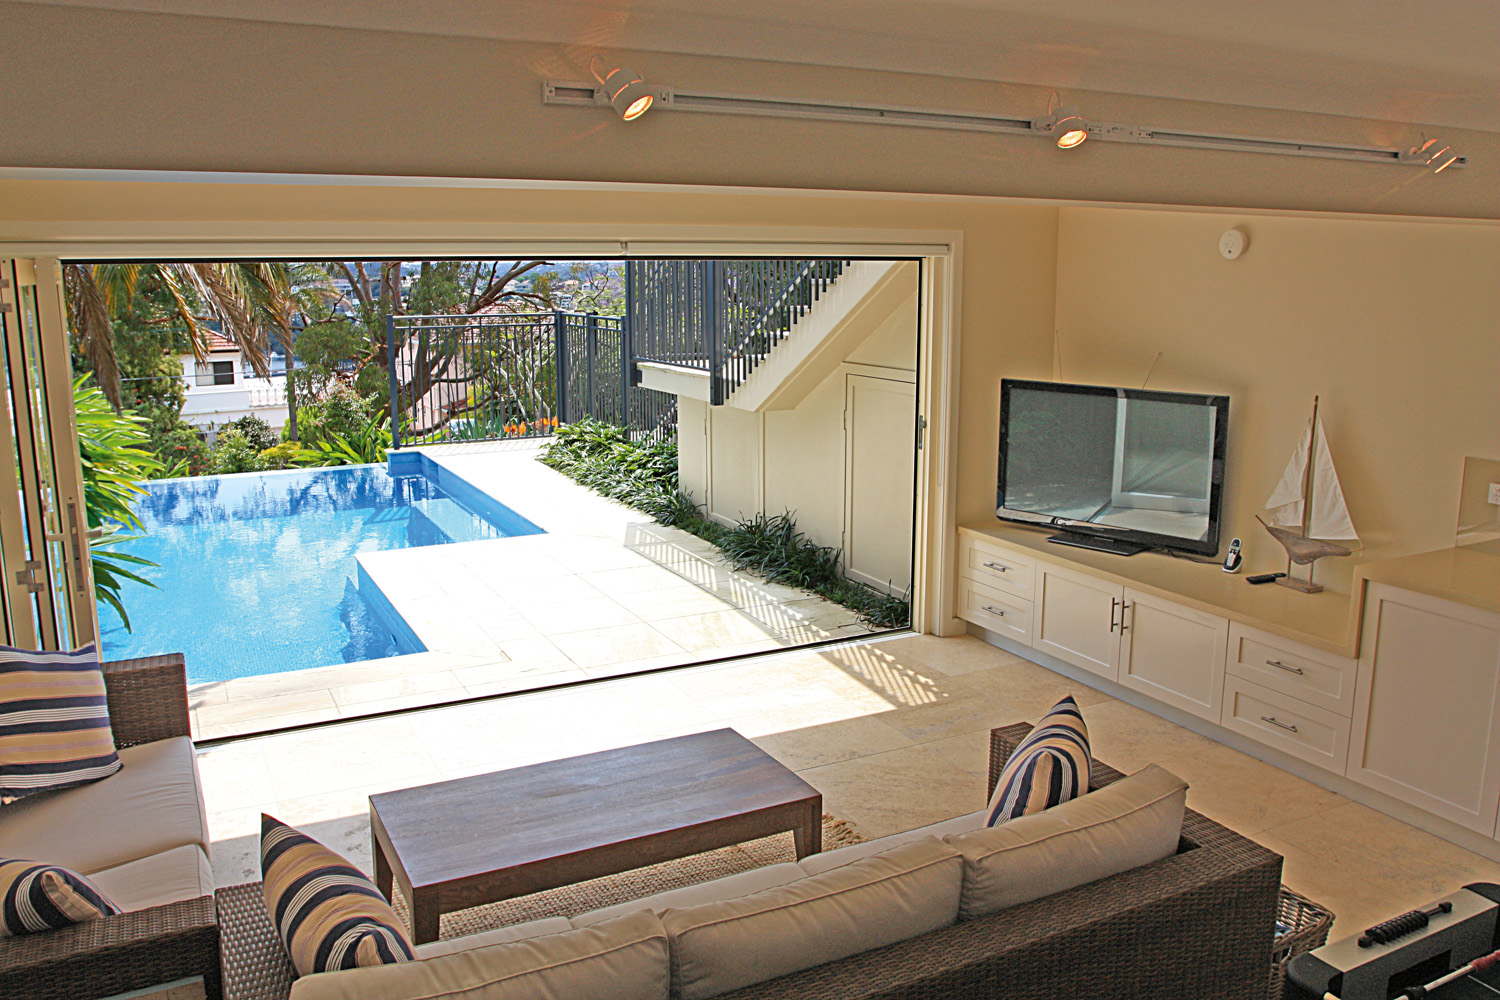 PSS024_Cabanas Feature_ integrated pool and adukts relaxation cabana